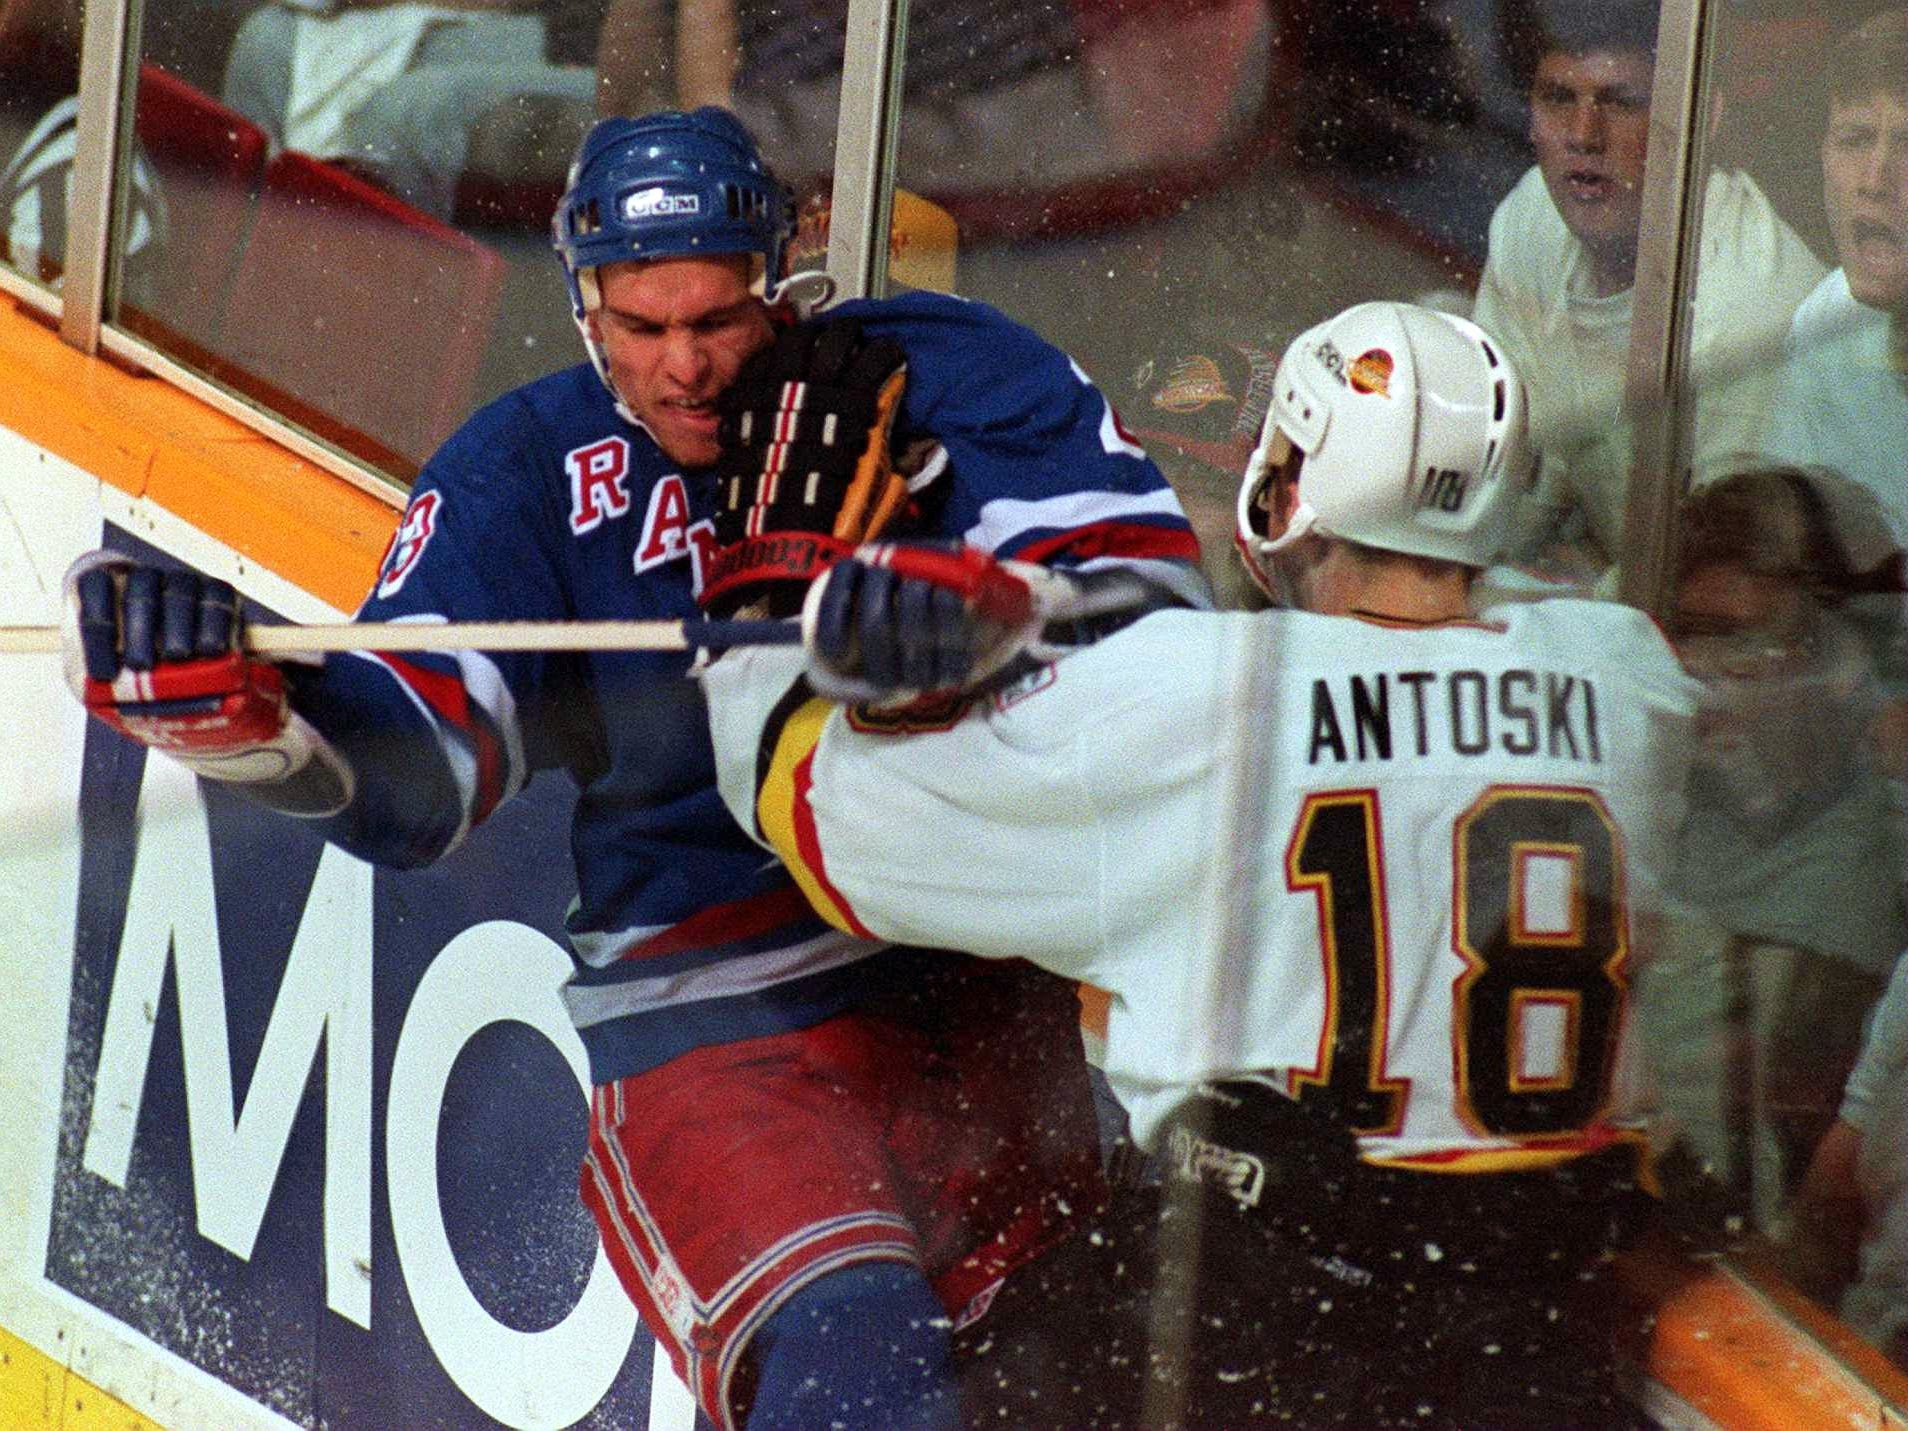 11 Jun 1994: RANGER''S CENTER SERGEI NEMCHINOV AND THE CANUCK''S SHAWN ANTOSKI BATTLE AGAINST THE BOARDS DURING THE FIRST PERIOD OF GAME SIX OF THE STANLEY CUP FINALS IN VANCOUVER, BRITISH COLUMBIA.